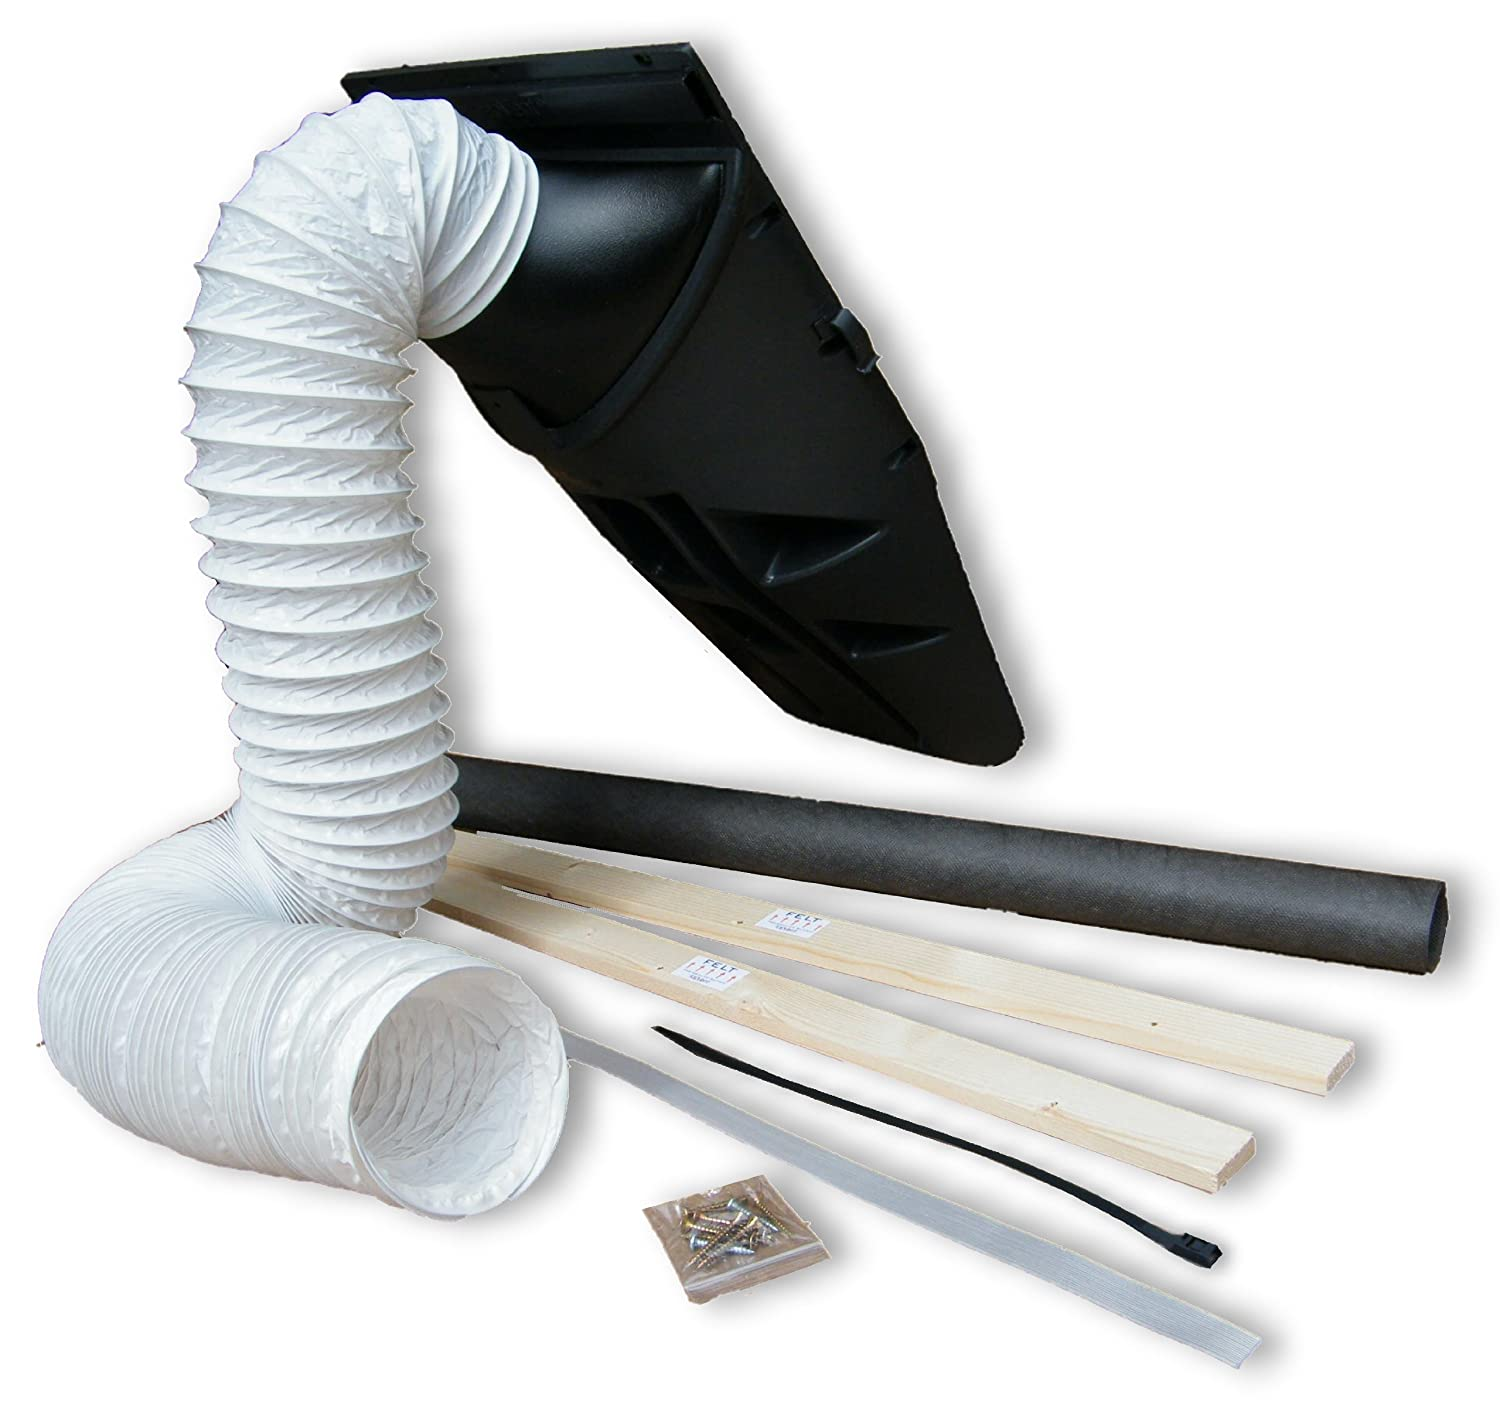 DIY fit extractor fan roof vent to vent from a bathroom or ensuite  No need  to get on the roof or remove a roof tile with lapVent  Fitted from the loft. DIY fit extractor fan roof vent to vent from a bathroom or ensuite